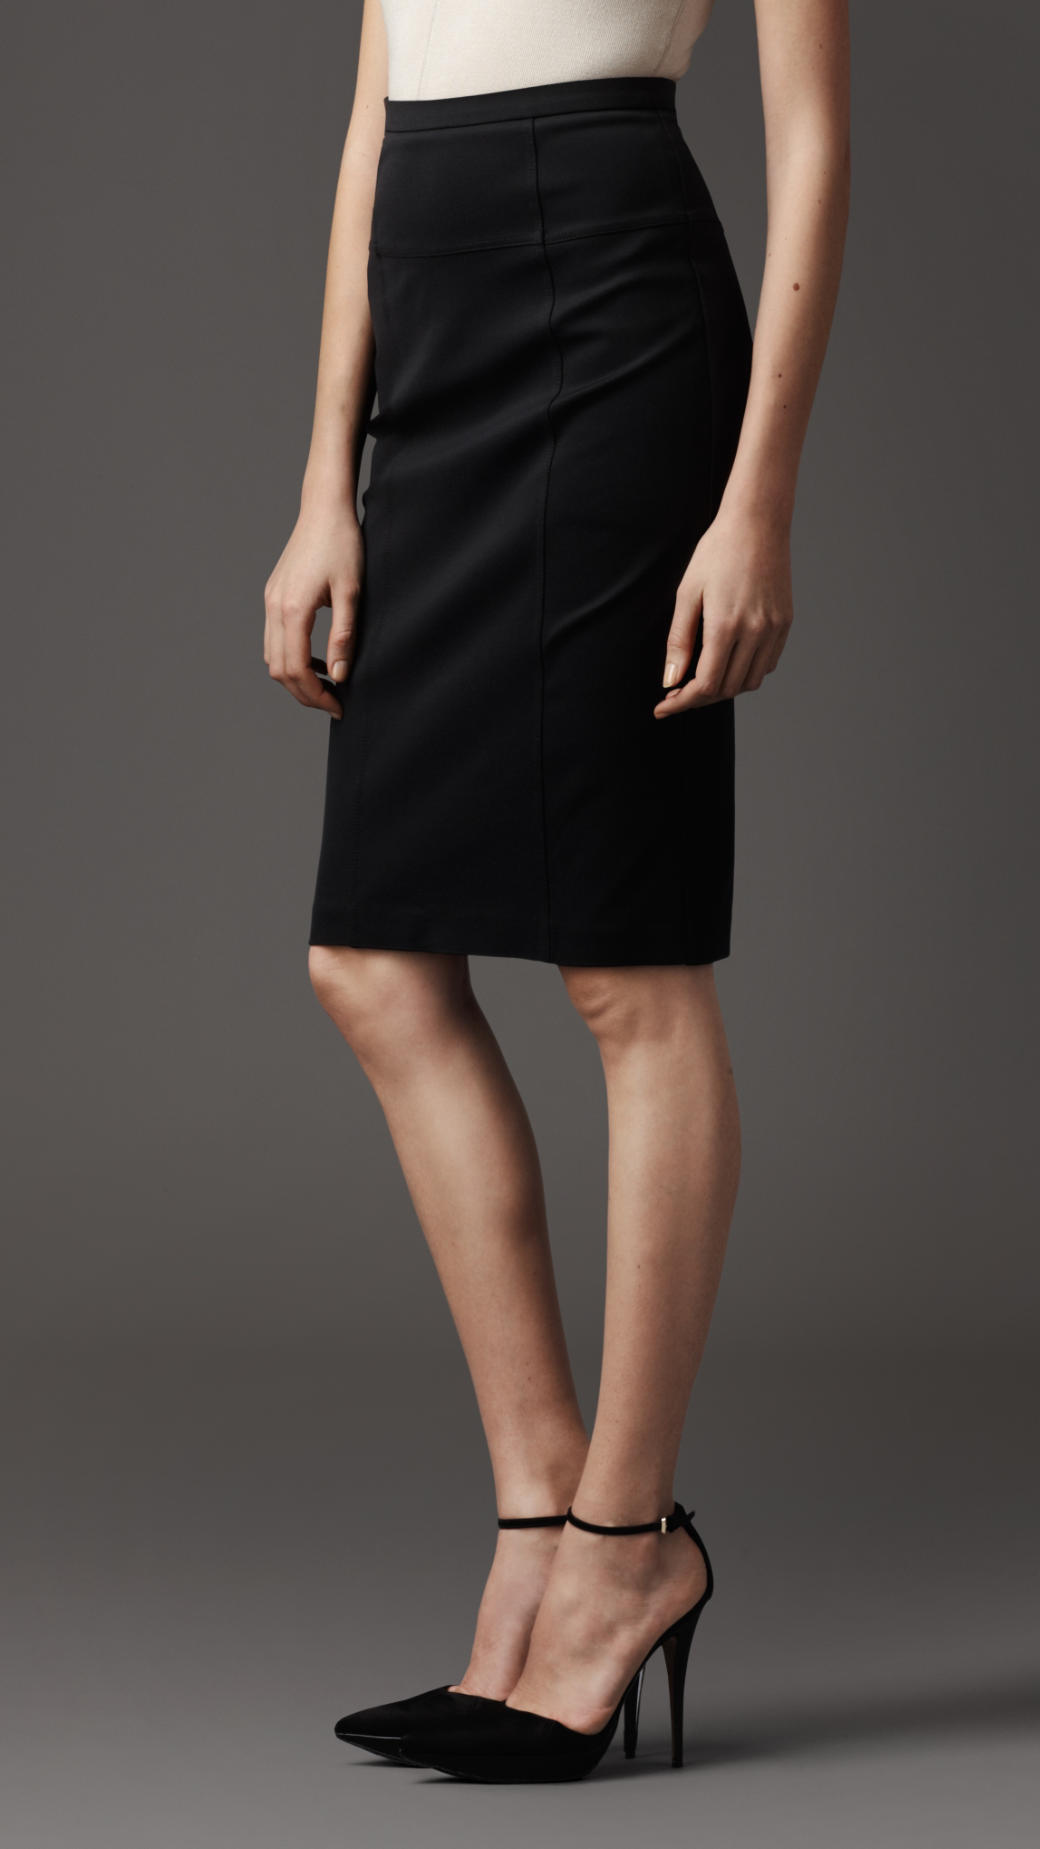 burberry stretch jersey pencil skirt in black lyst